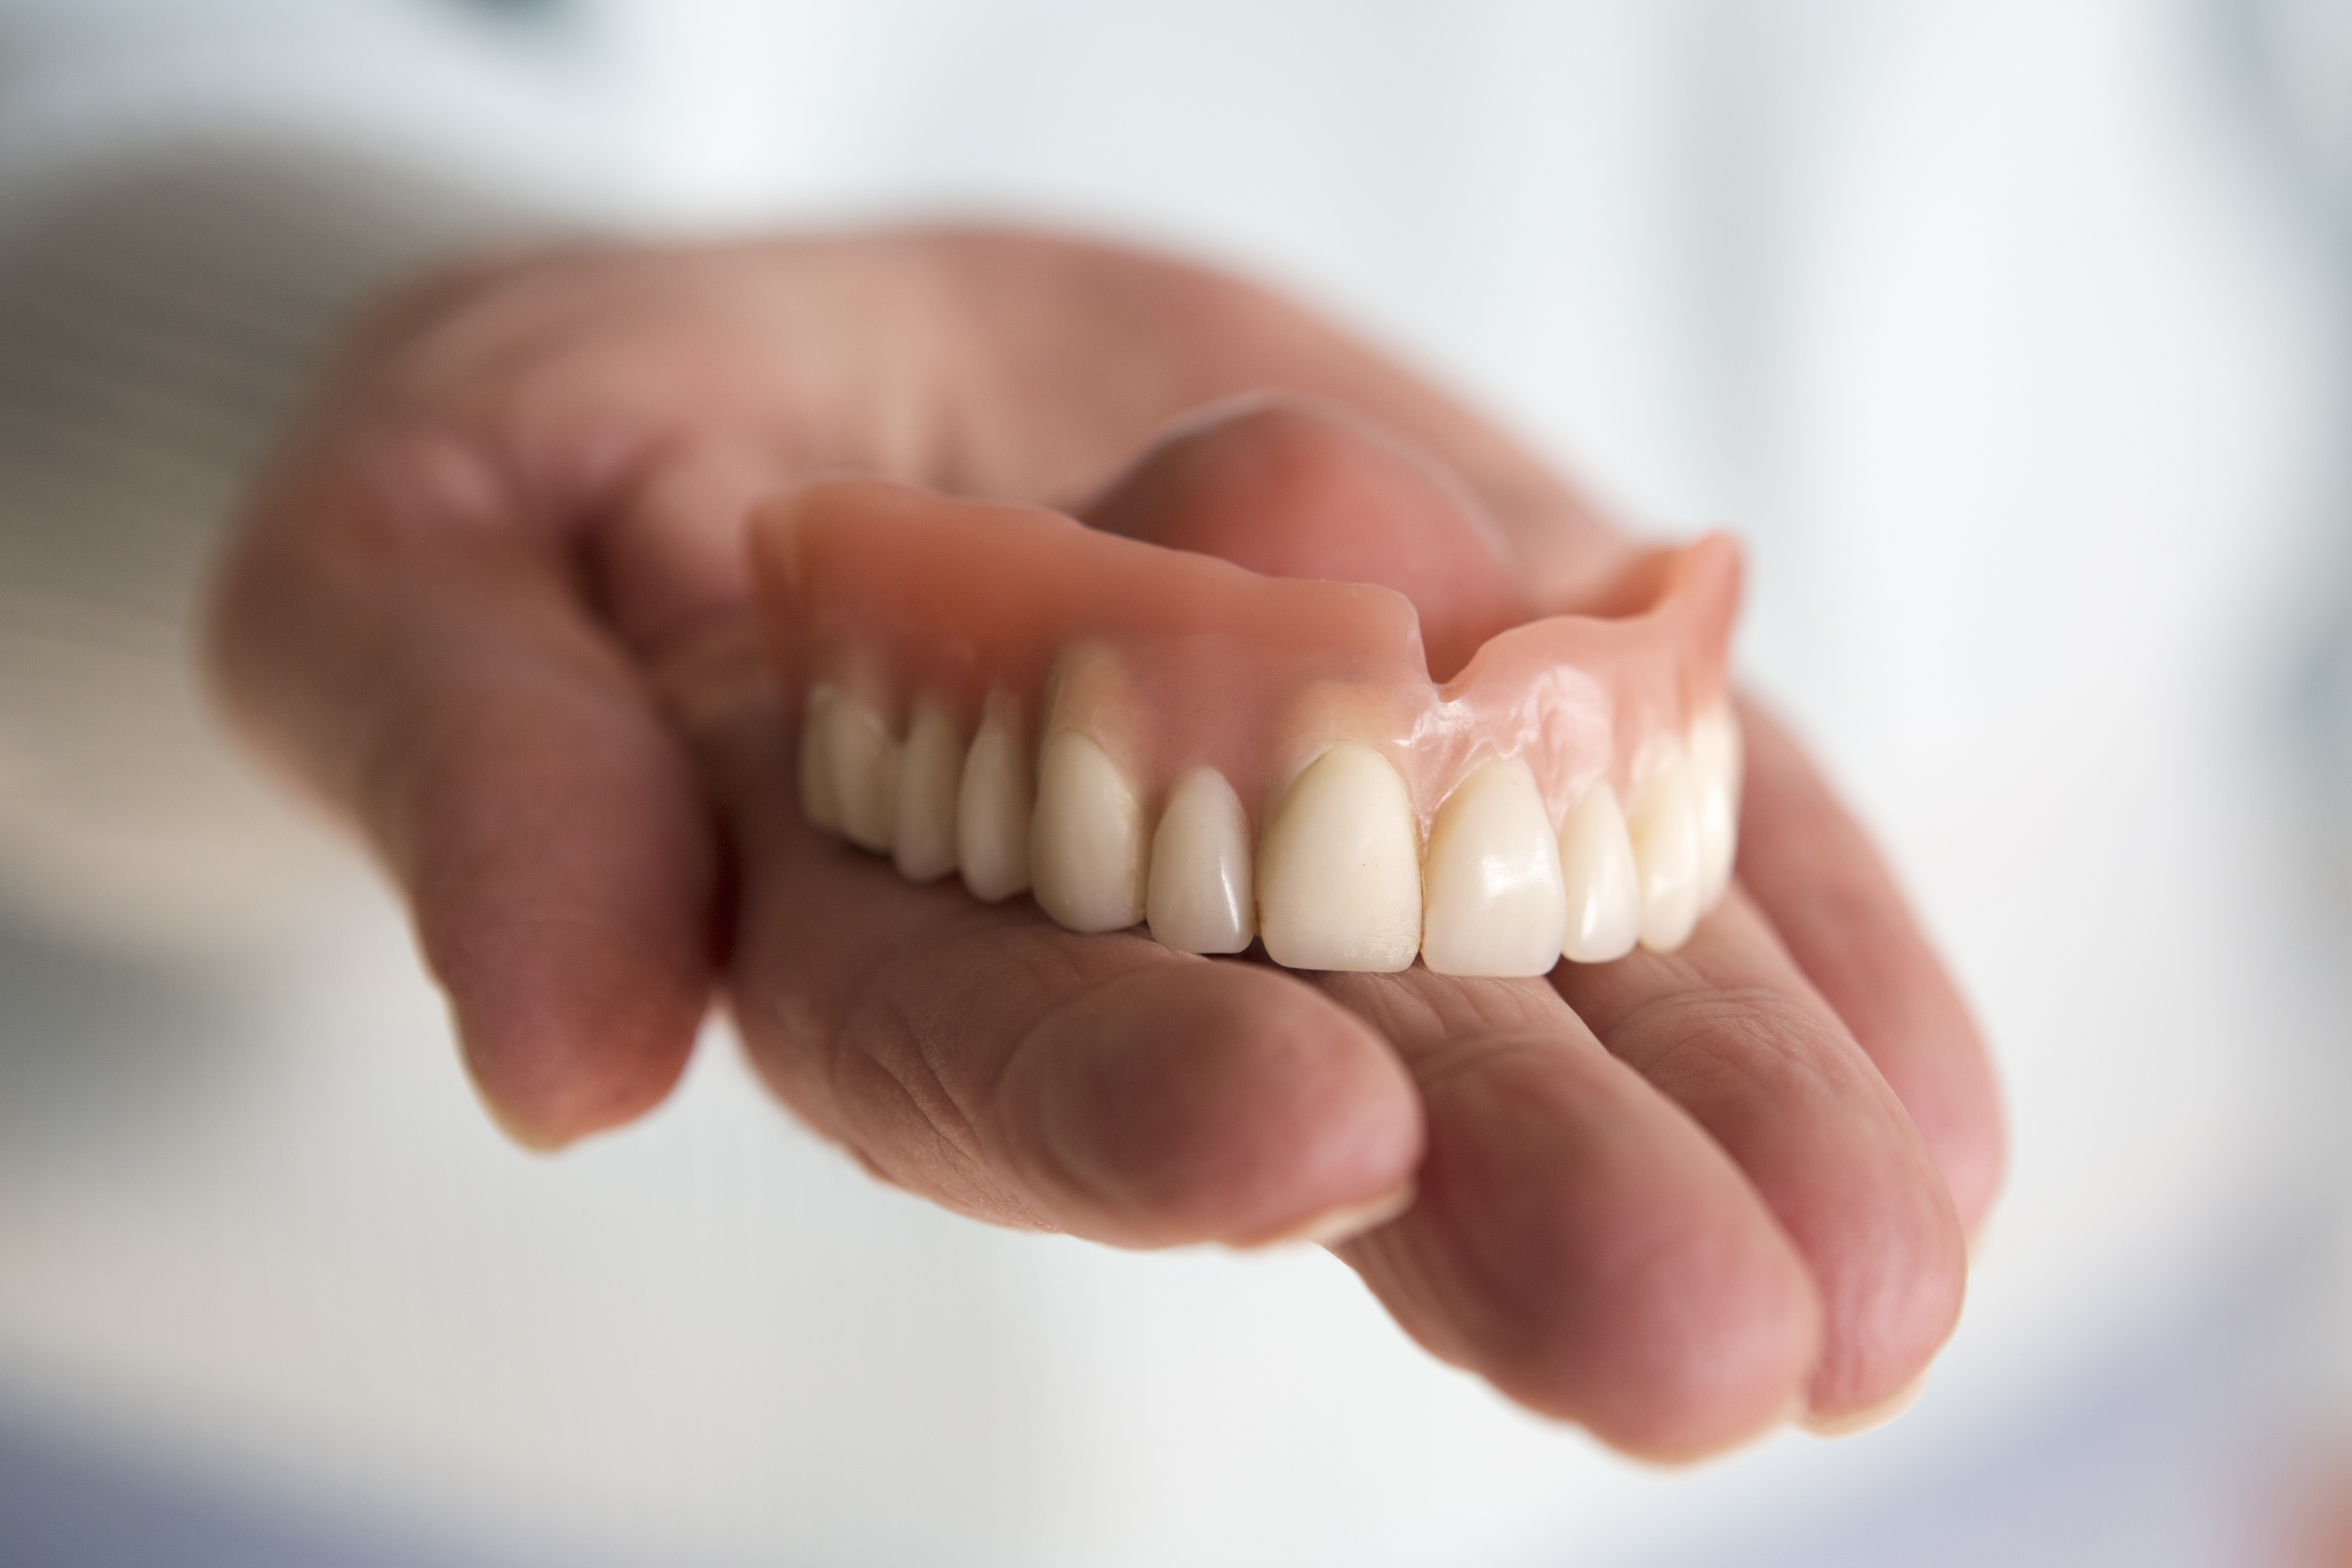 Is it time to explore dentures as an option dimples dental if youve been living with tooth loss for some time it can become the new status quo its natural to adapt to your surroundings and circumstances solutioingenieria Images